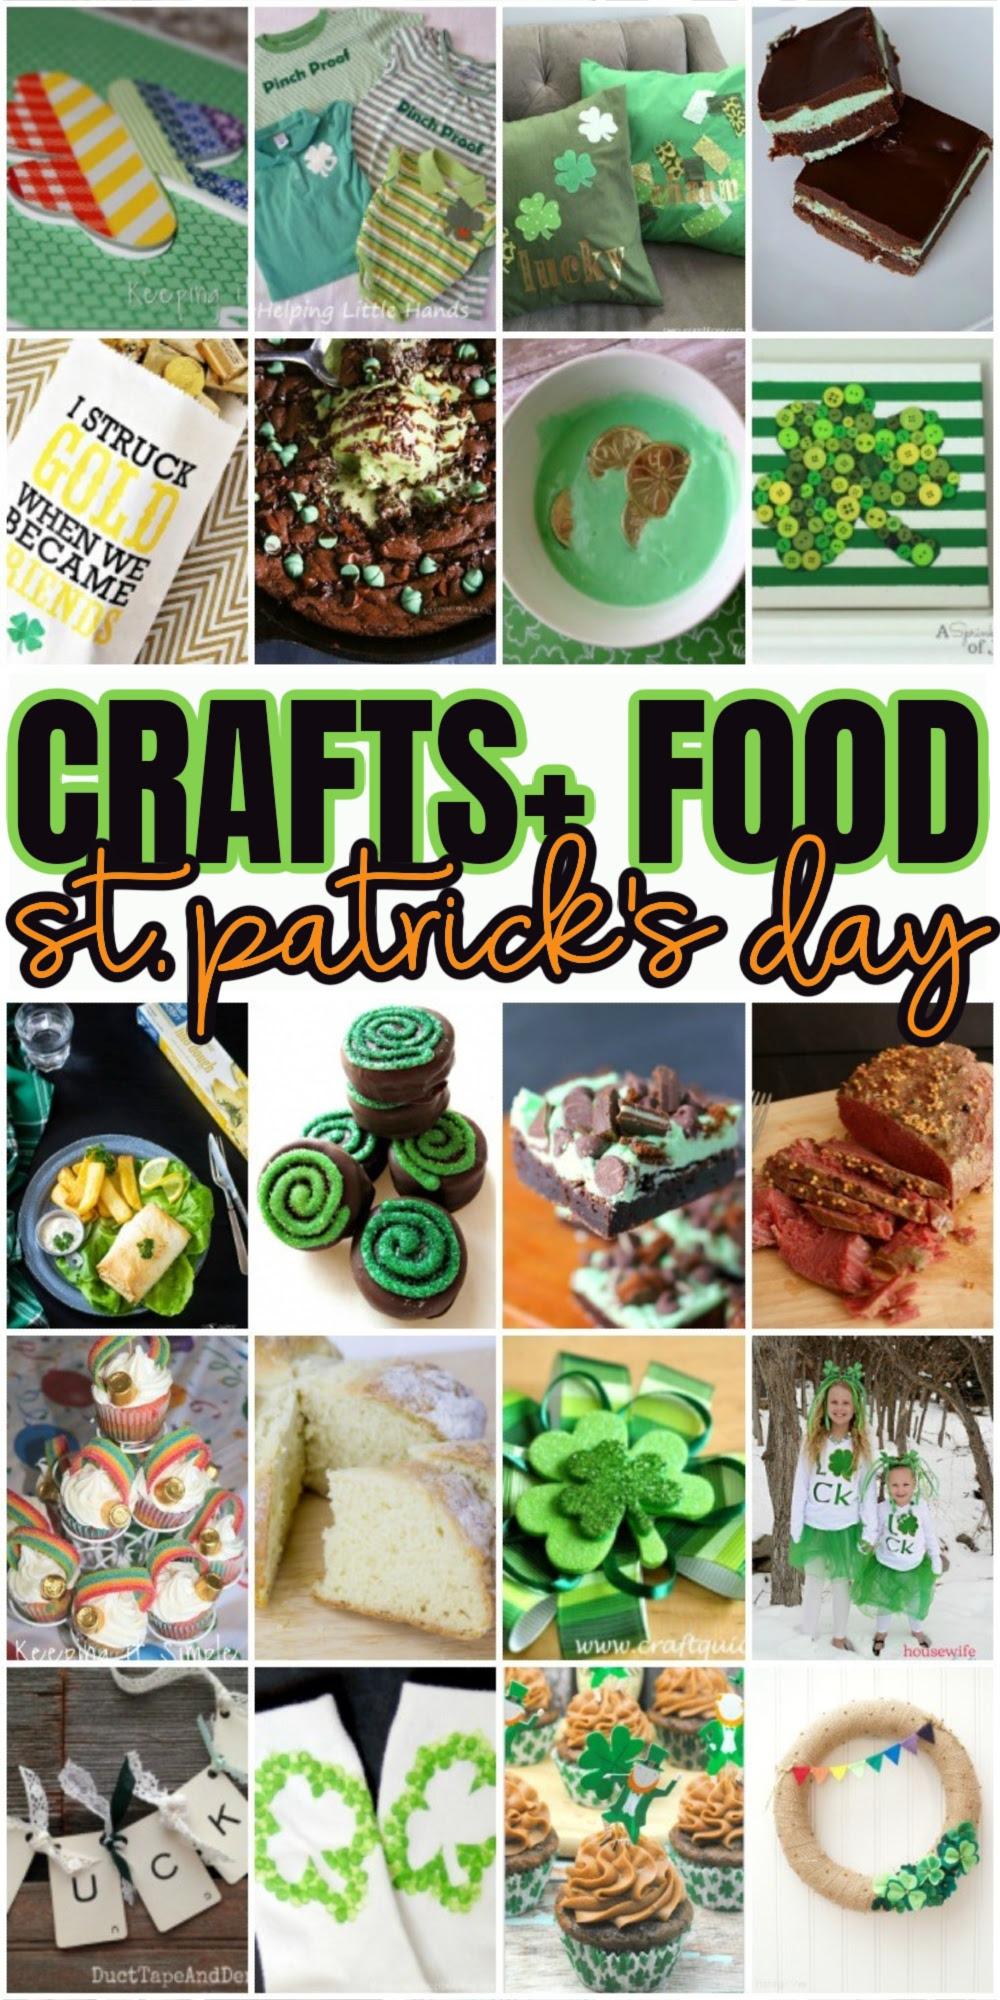 Tons of recipes craft tutorials party ideas and kid activities perfect for St. Patrick's Day